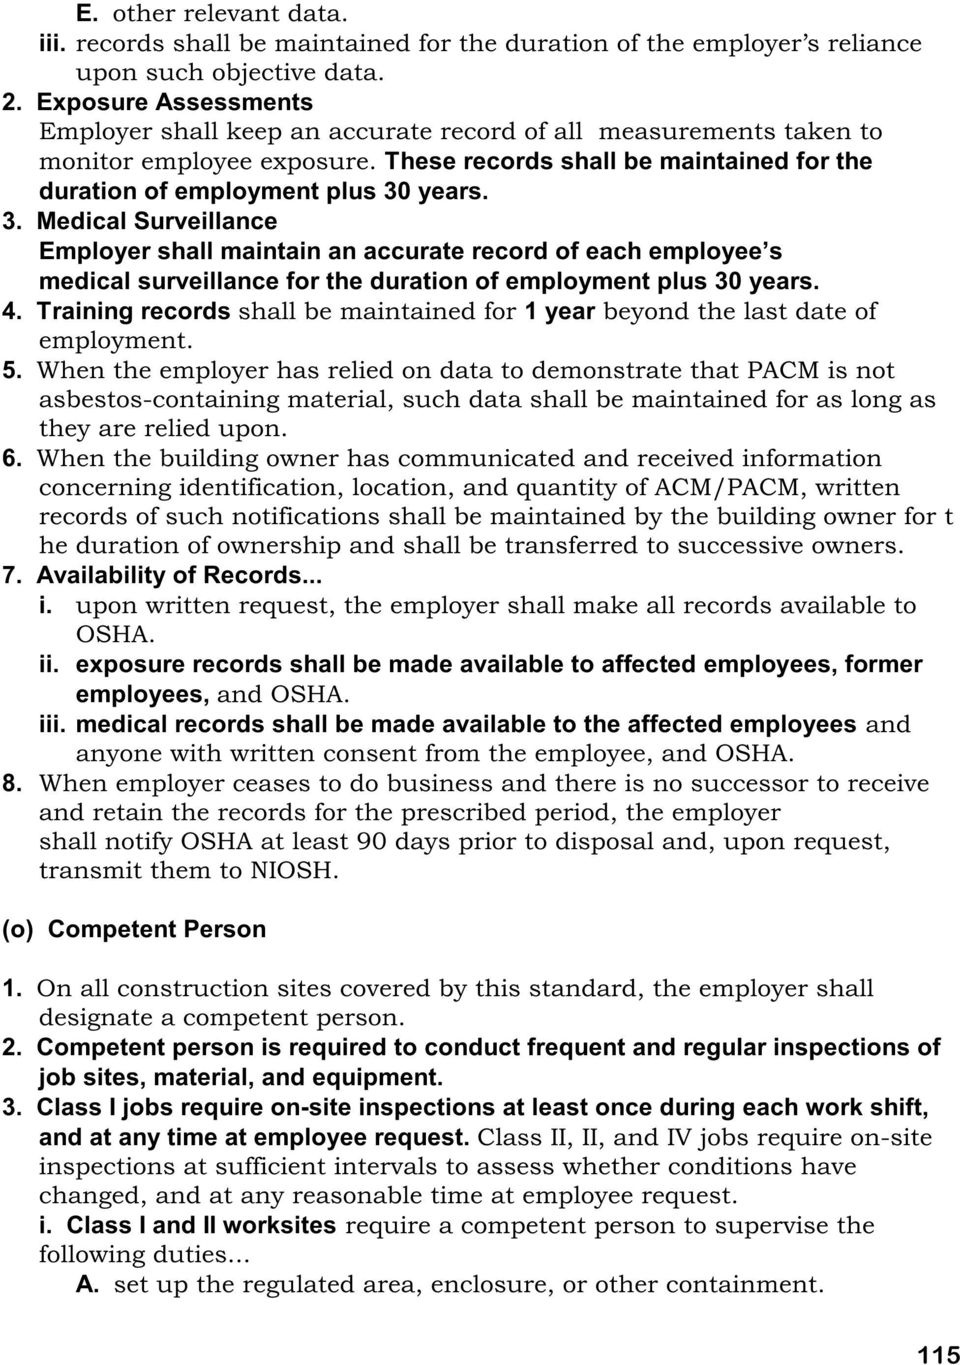 years. 3. Medical Surveillance Employer shall maintain an accurate record of each employee s medical surveillance for the duration of employment plus 30 years. 4.